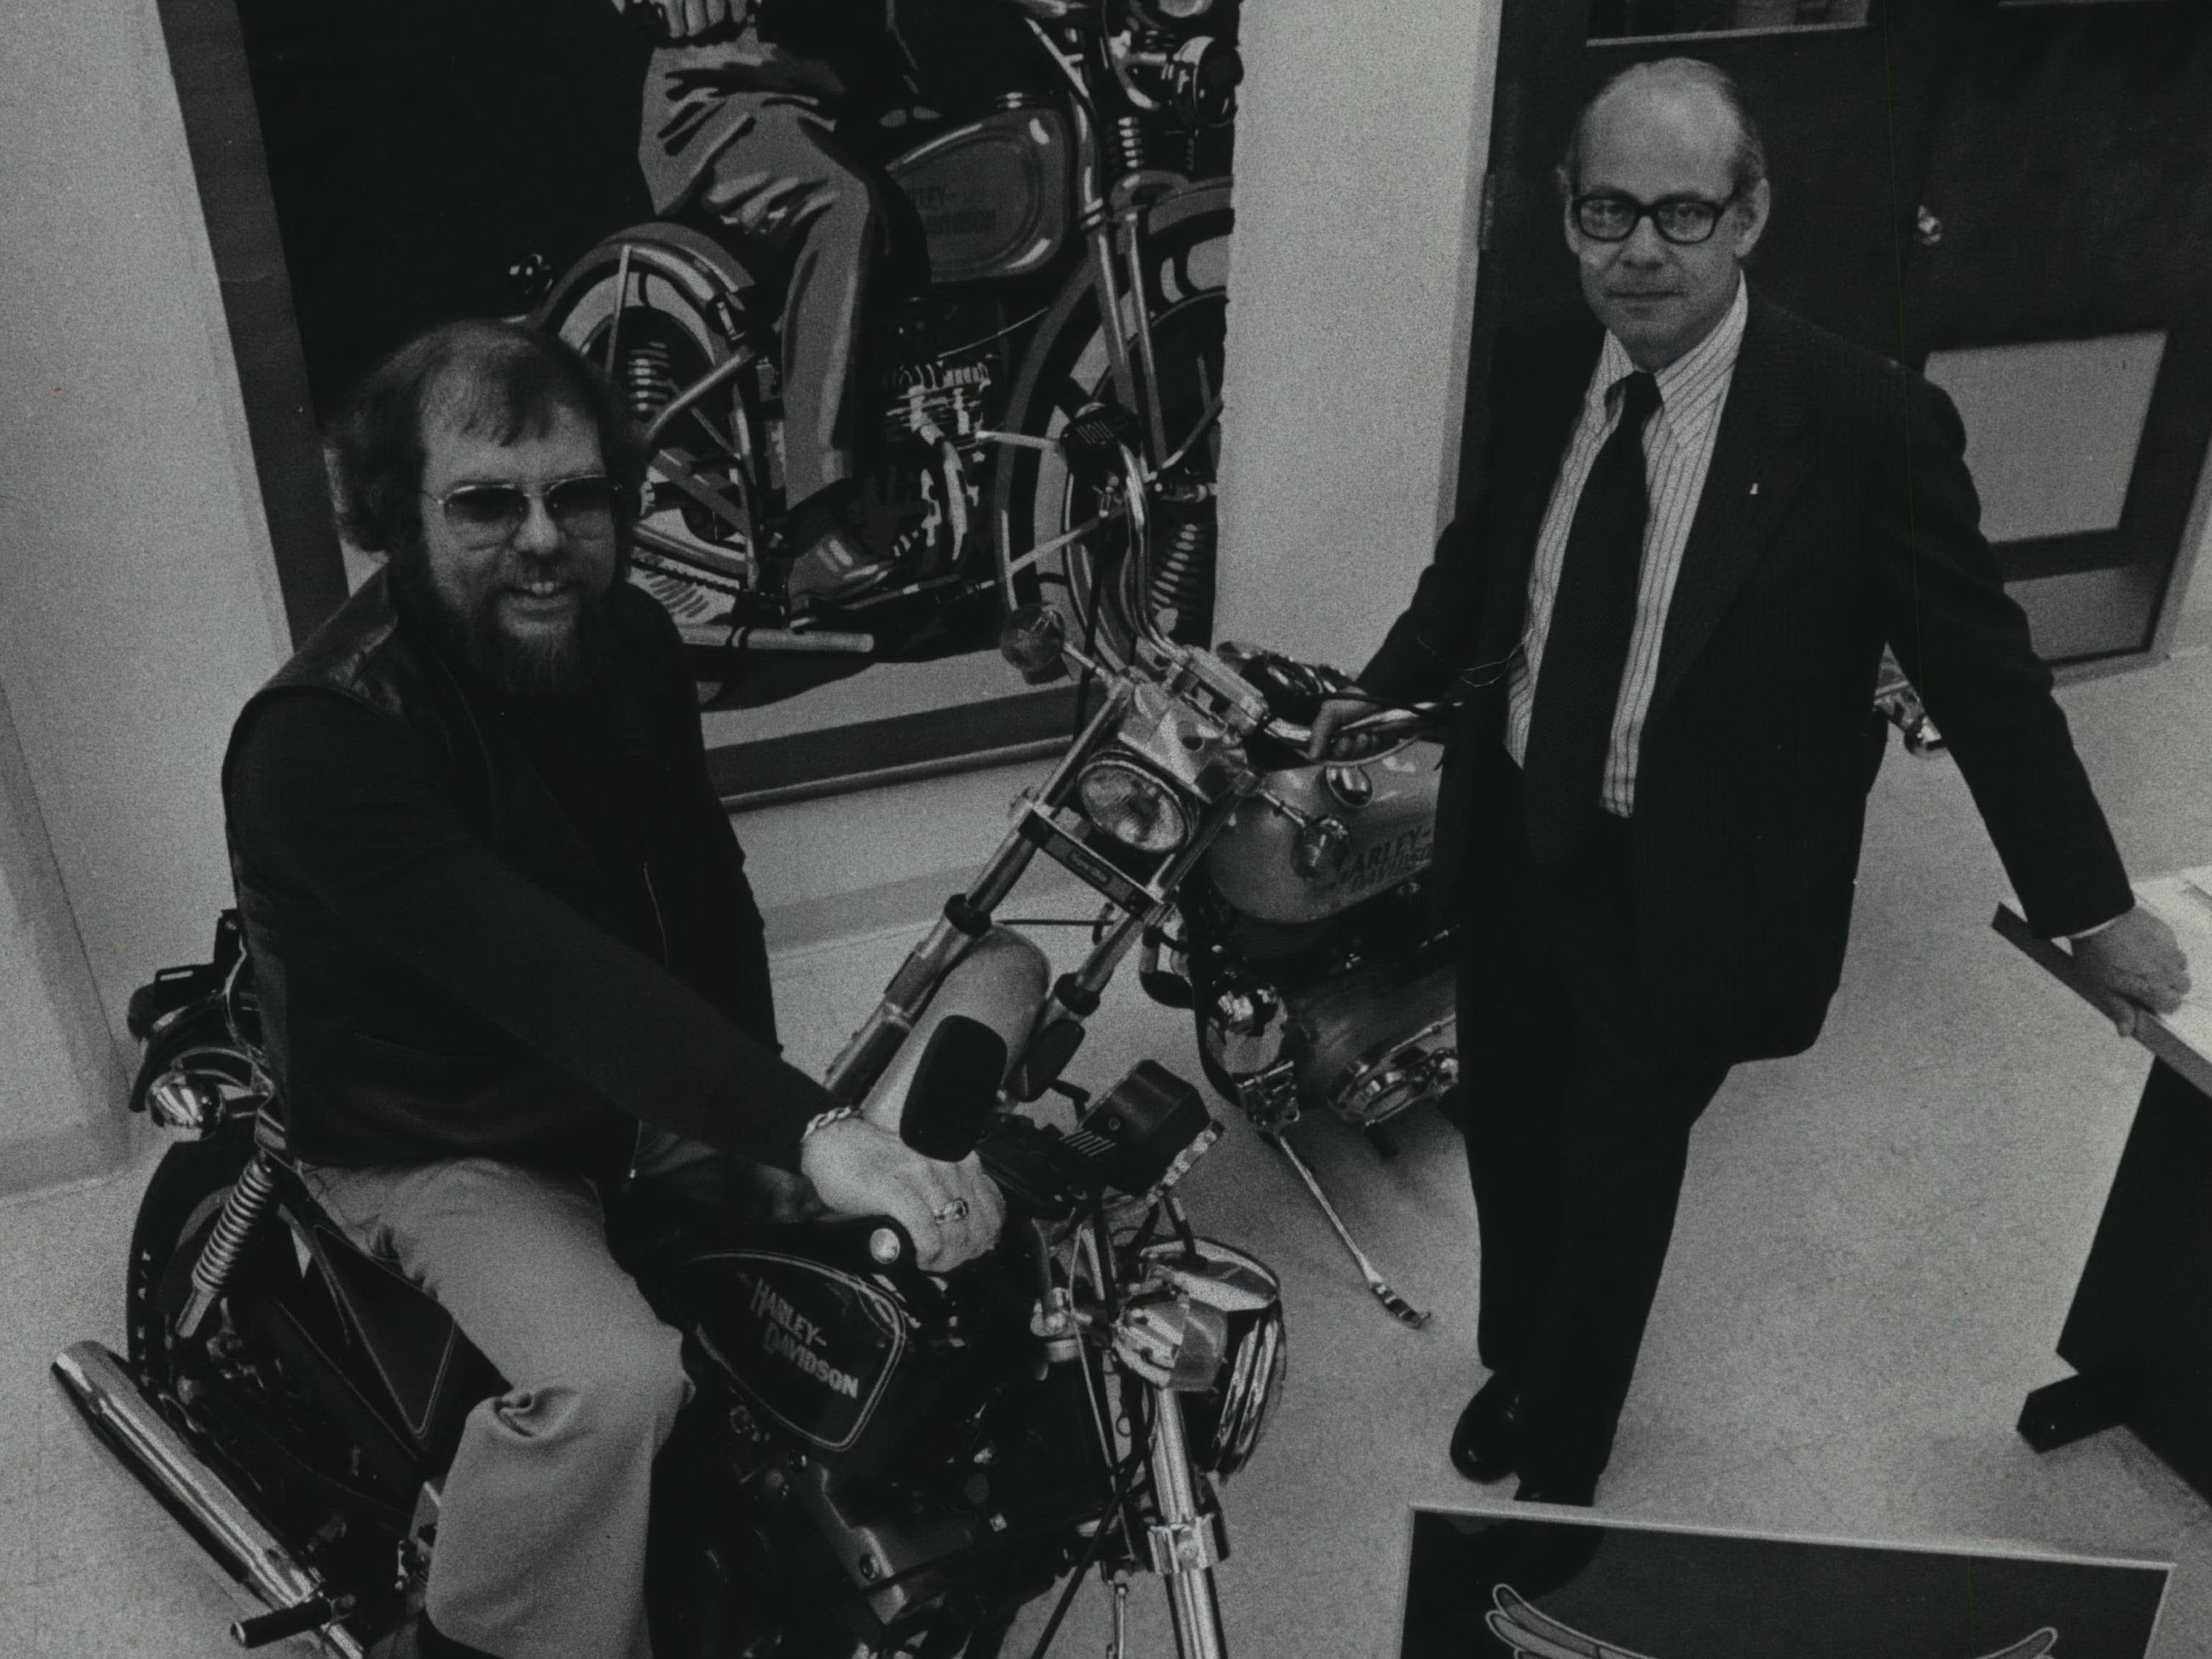 William (left) and John Davidson, the brothers who head the Harley-Davidson Motor Co., pose with some of the company's products in the lobby of Harley's Milwaukee headquarters during celebrations of the motorcycle manufacturer's 75th anniversary in 1978, a decade after Harley agreed to be acquired by AMF.